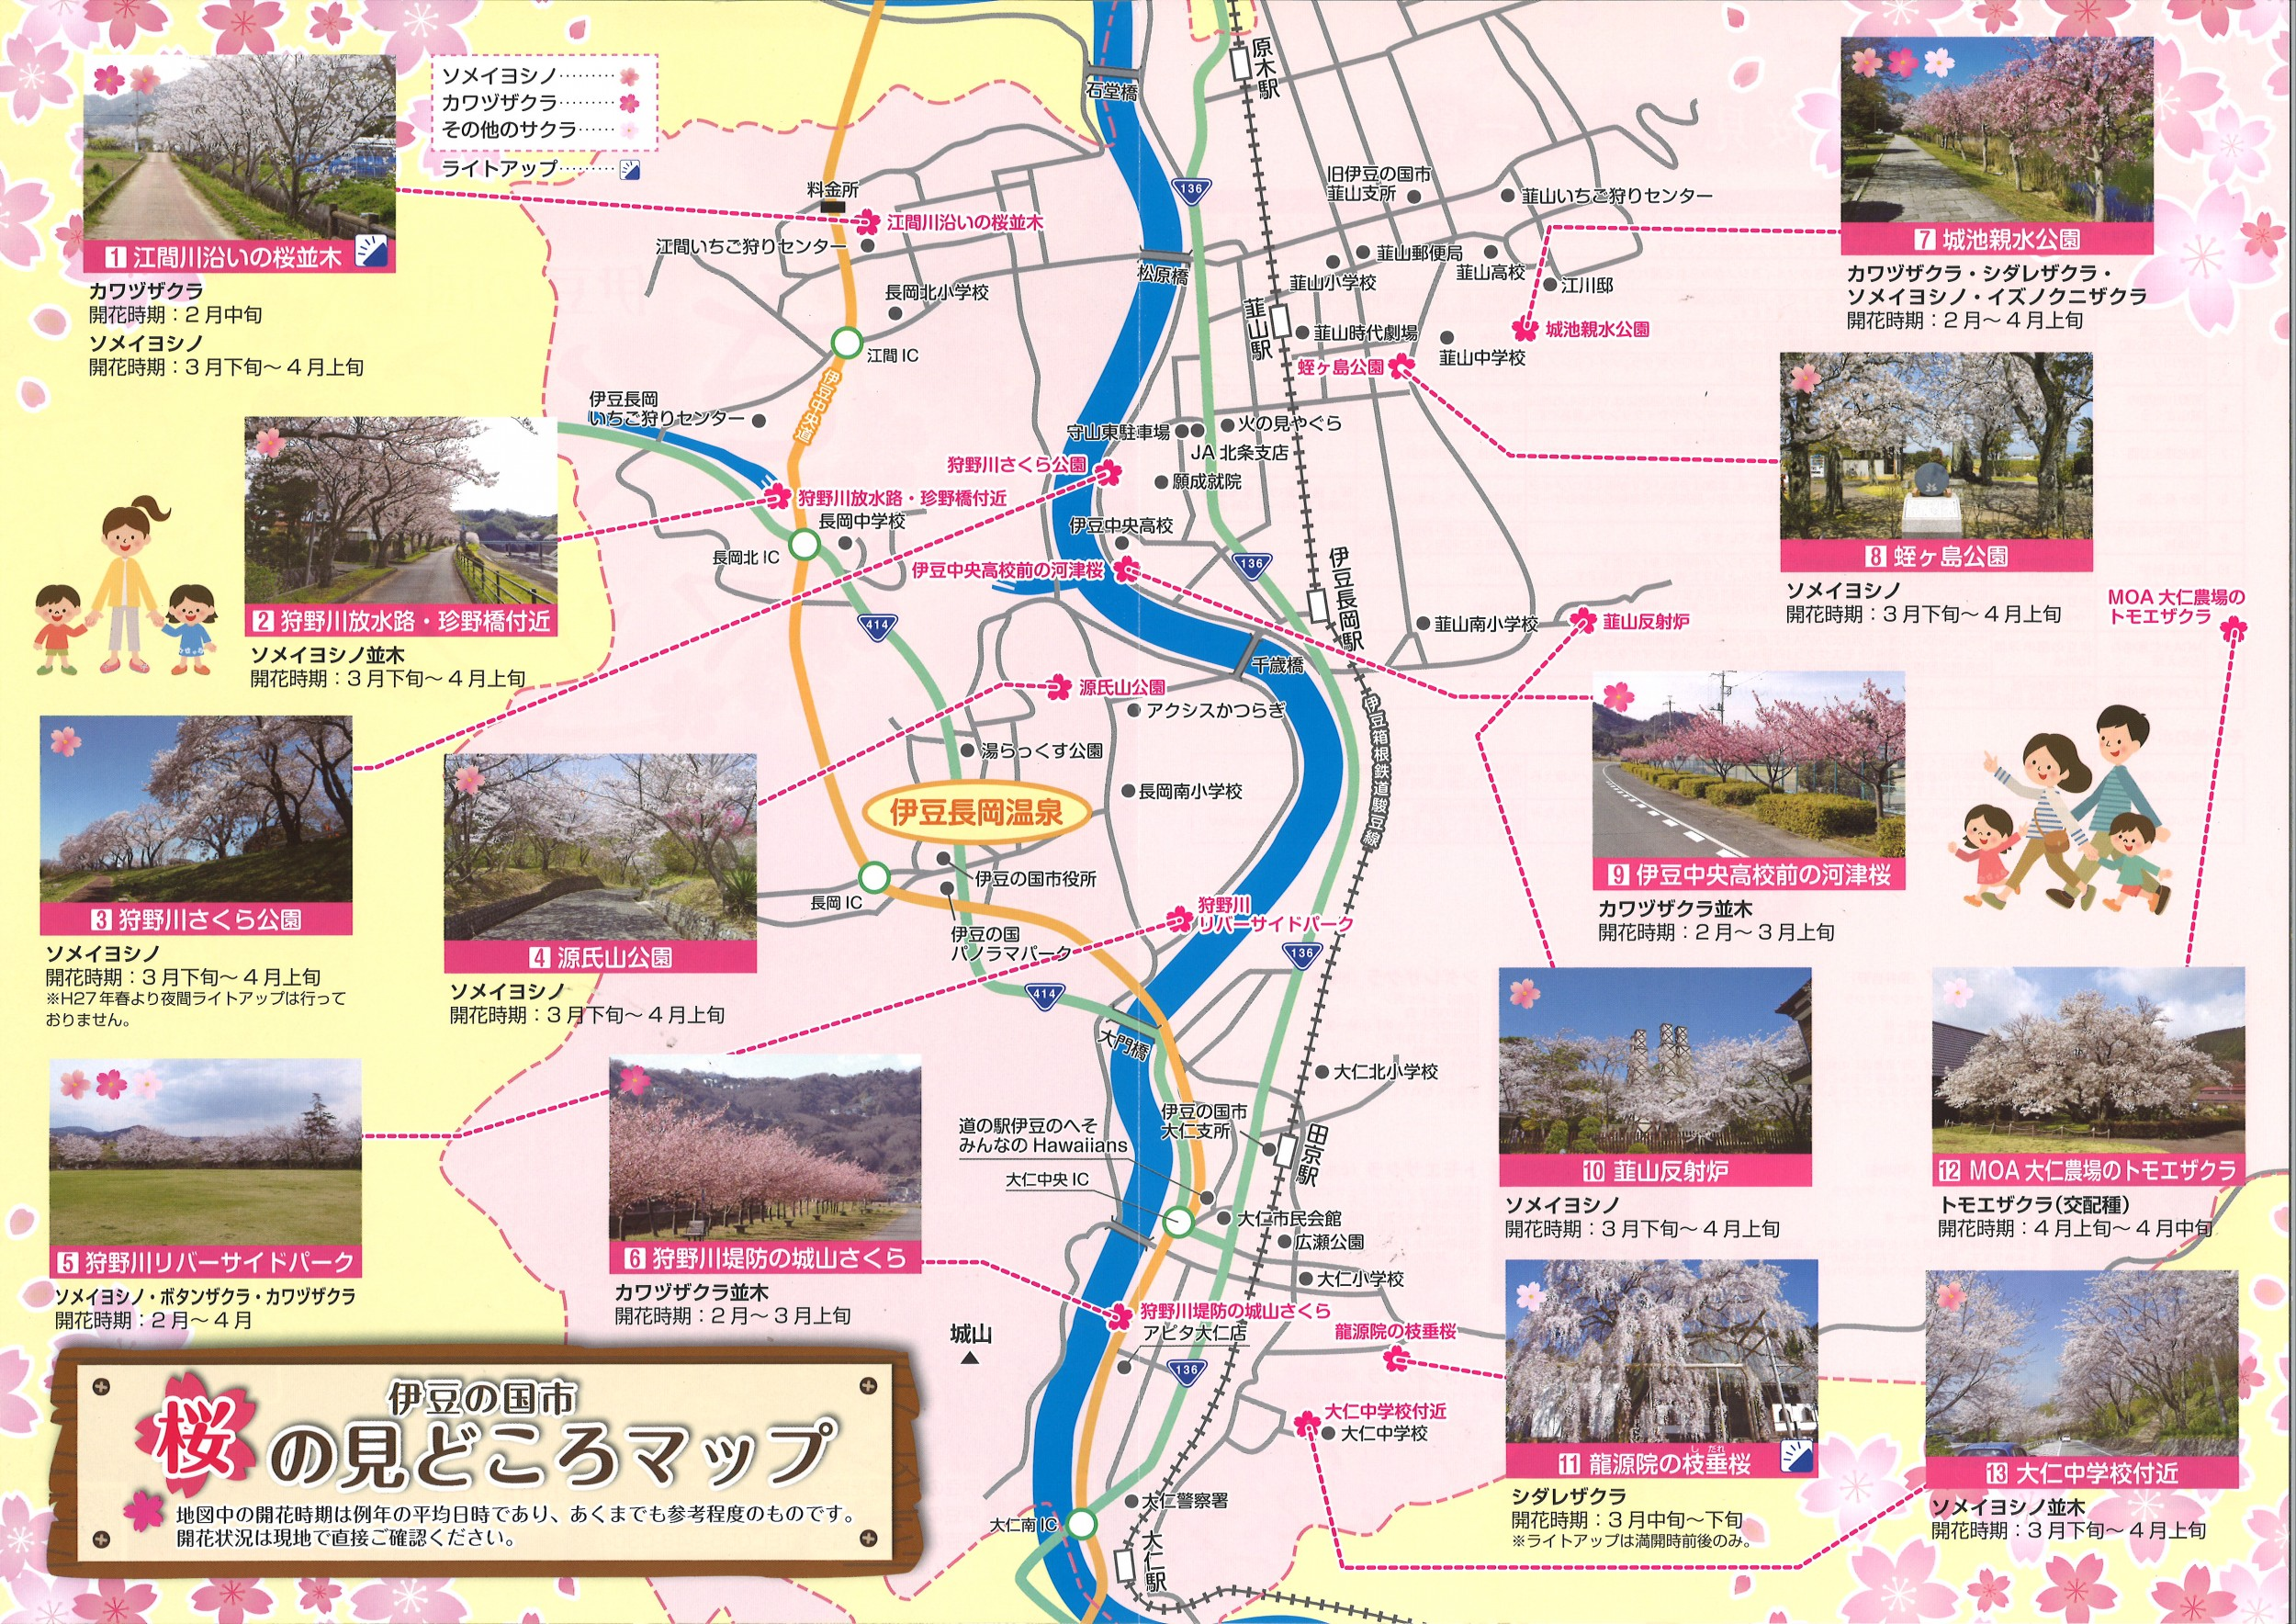 sakuramap-map-e1456452489864